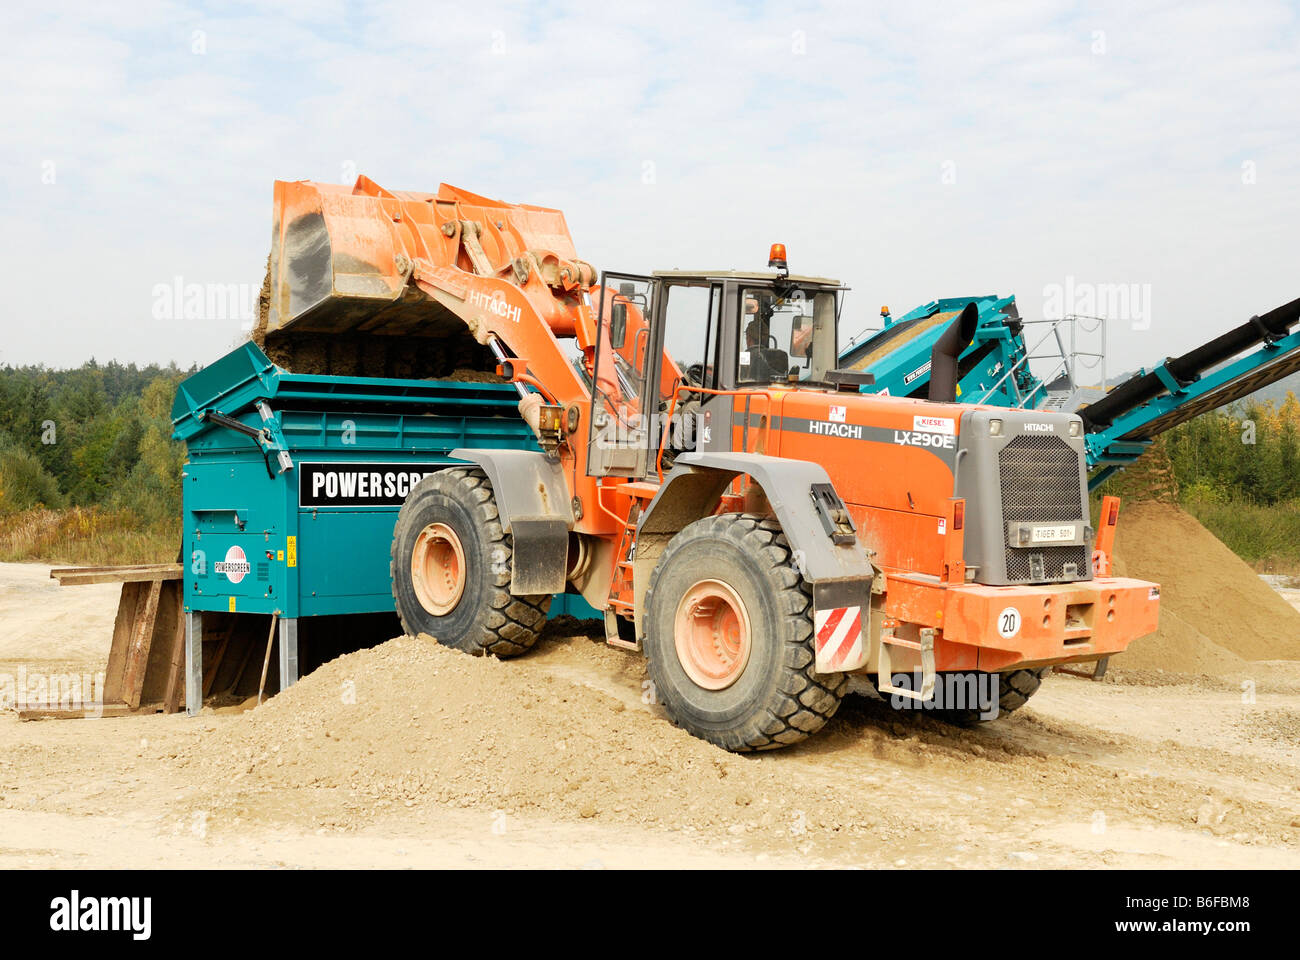 Wheeled loader putting gravel into a mobile sieving plant - Stock Image